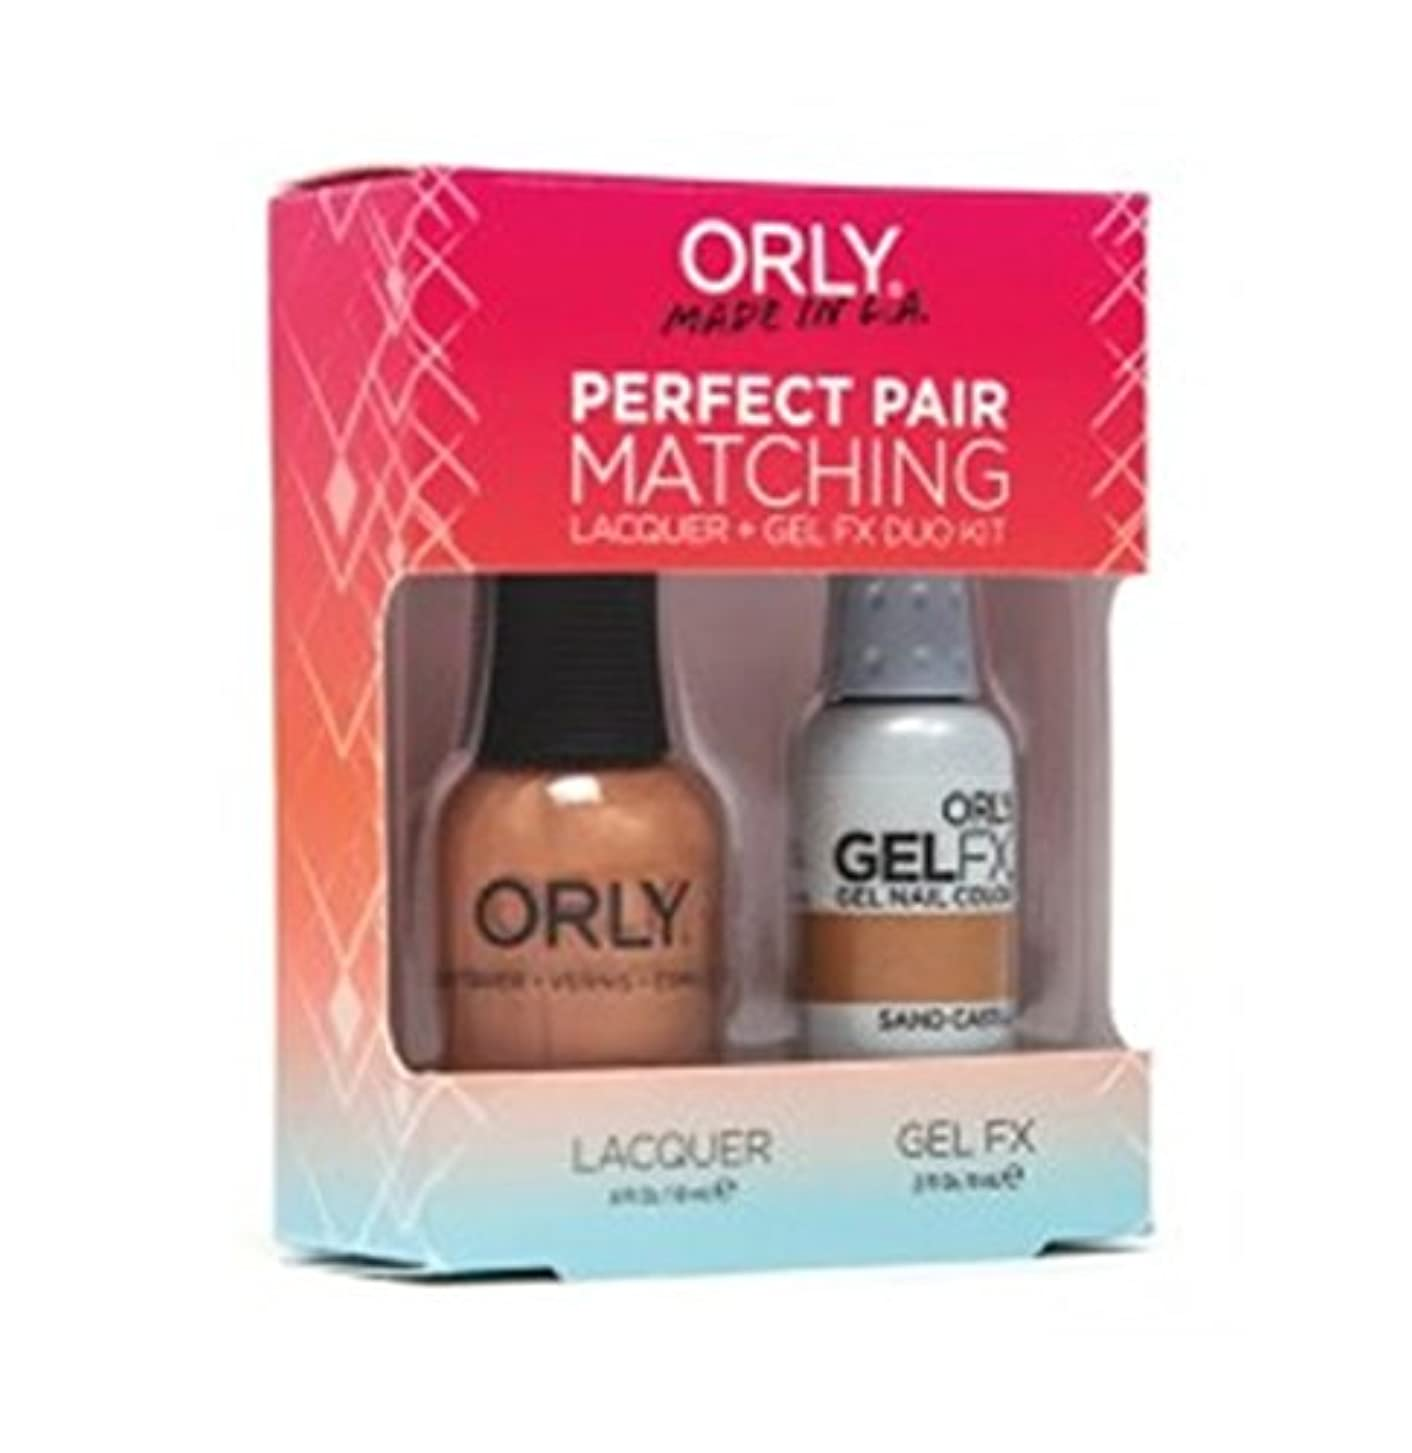 画像ハグ課すOrly - Perfect Pair Matching Lacquer+Gel FX Kit - Sand Castle - 0.6 oz / 0.3 oz